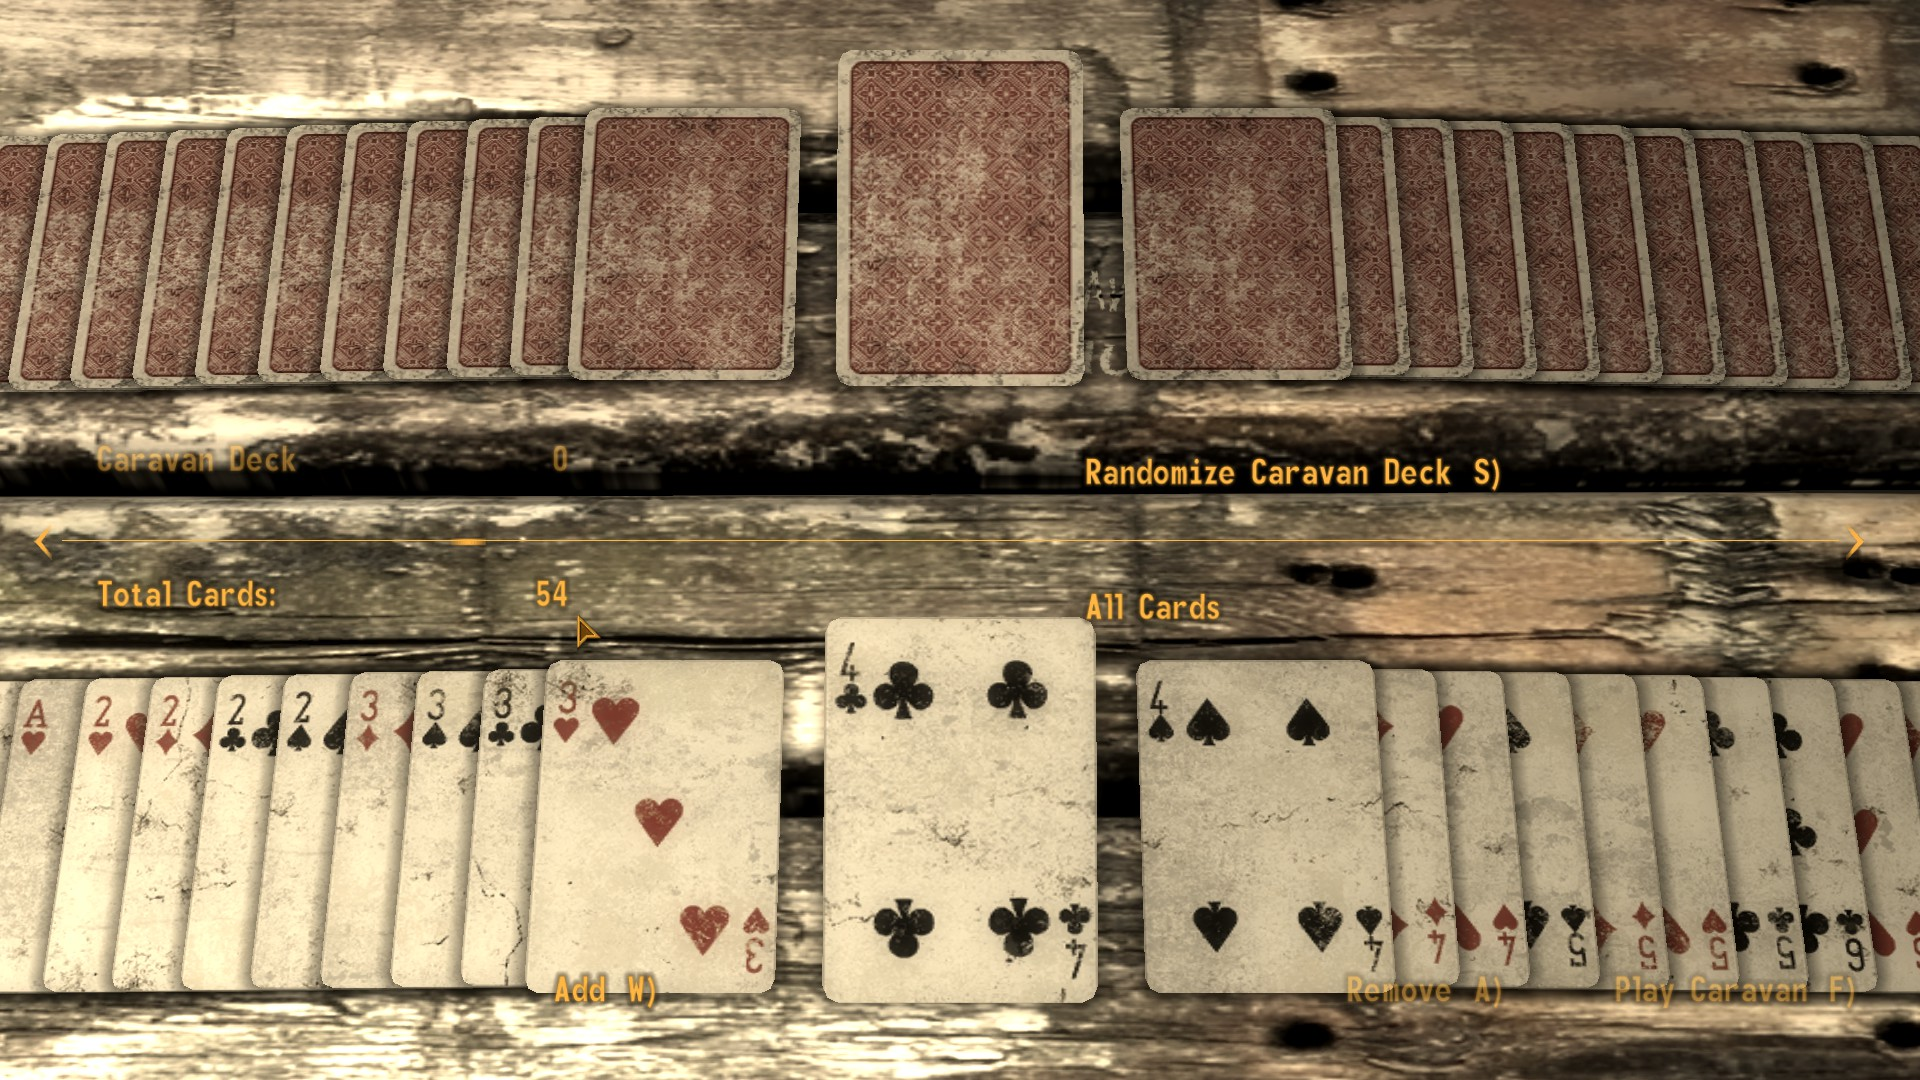 how to win at caravan fallout new vegas